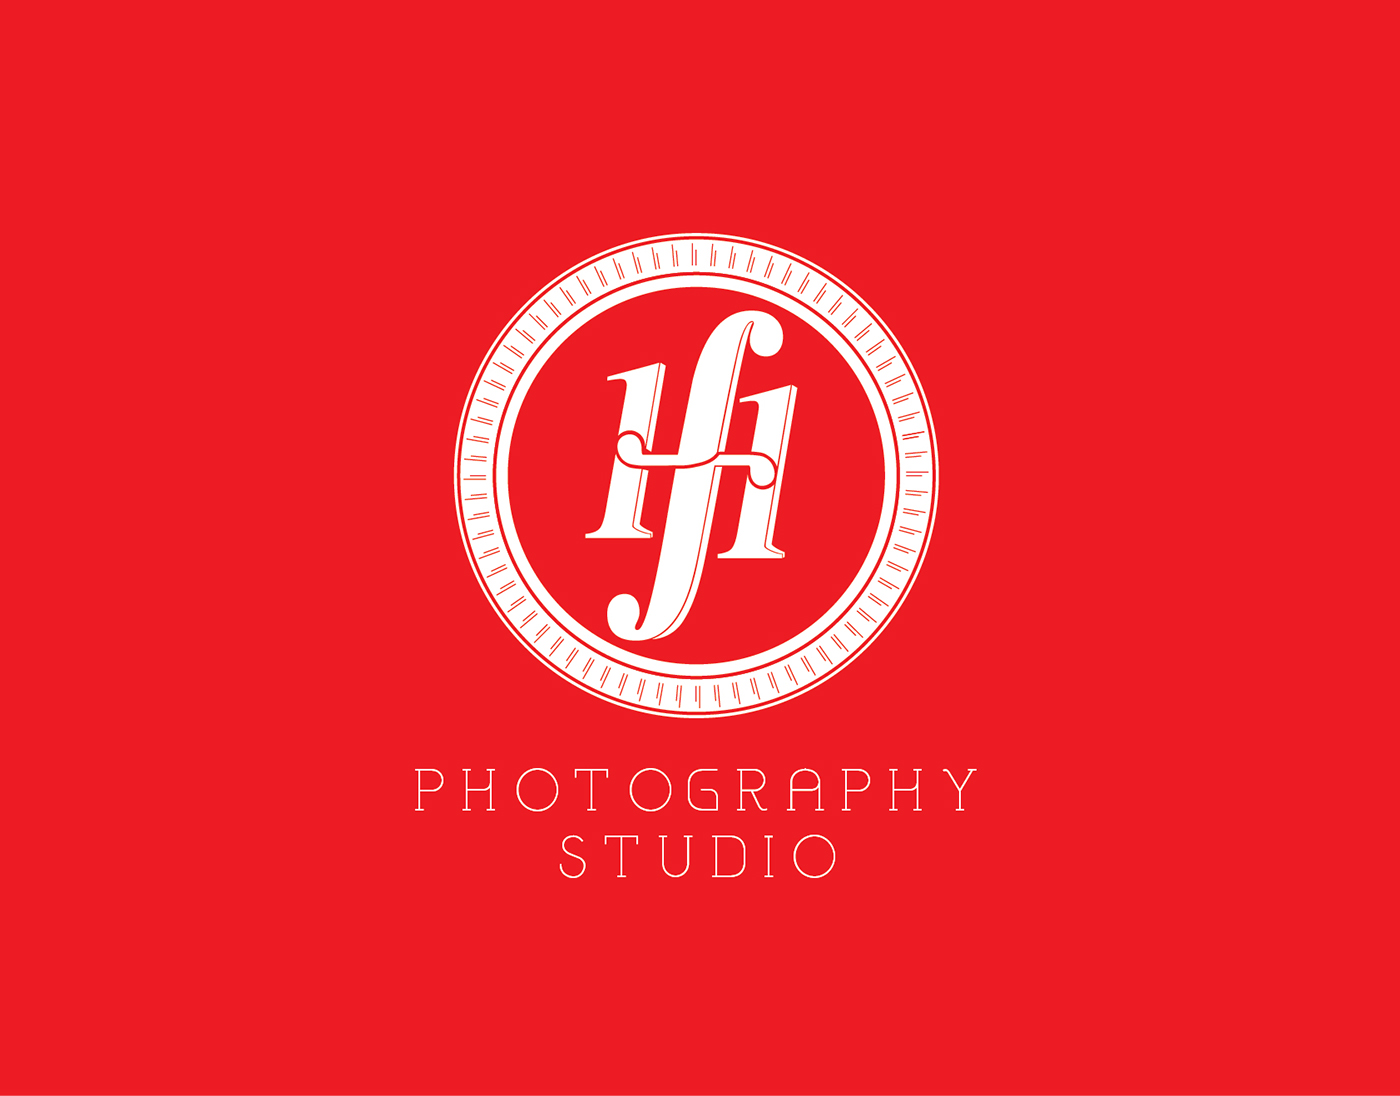 F11 Photography Studio on Behance